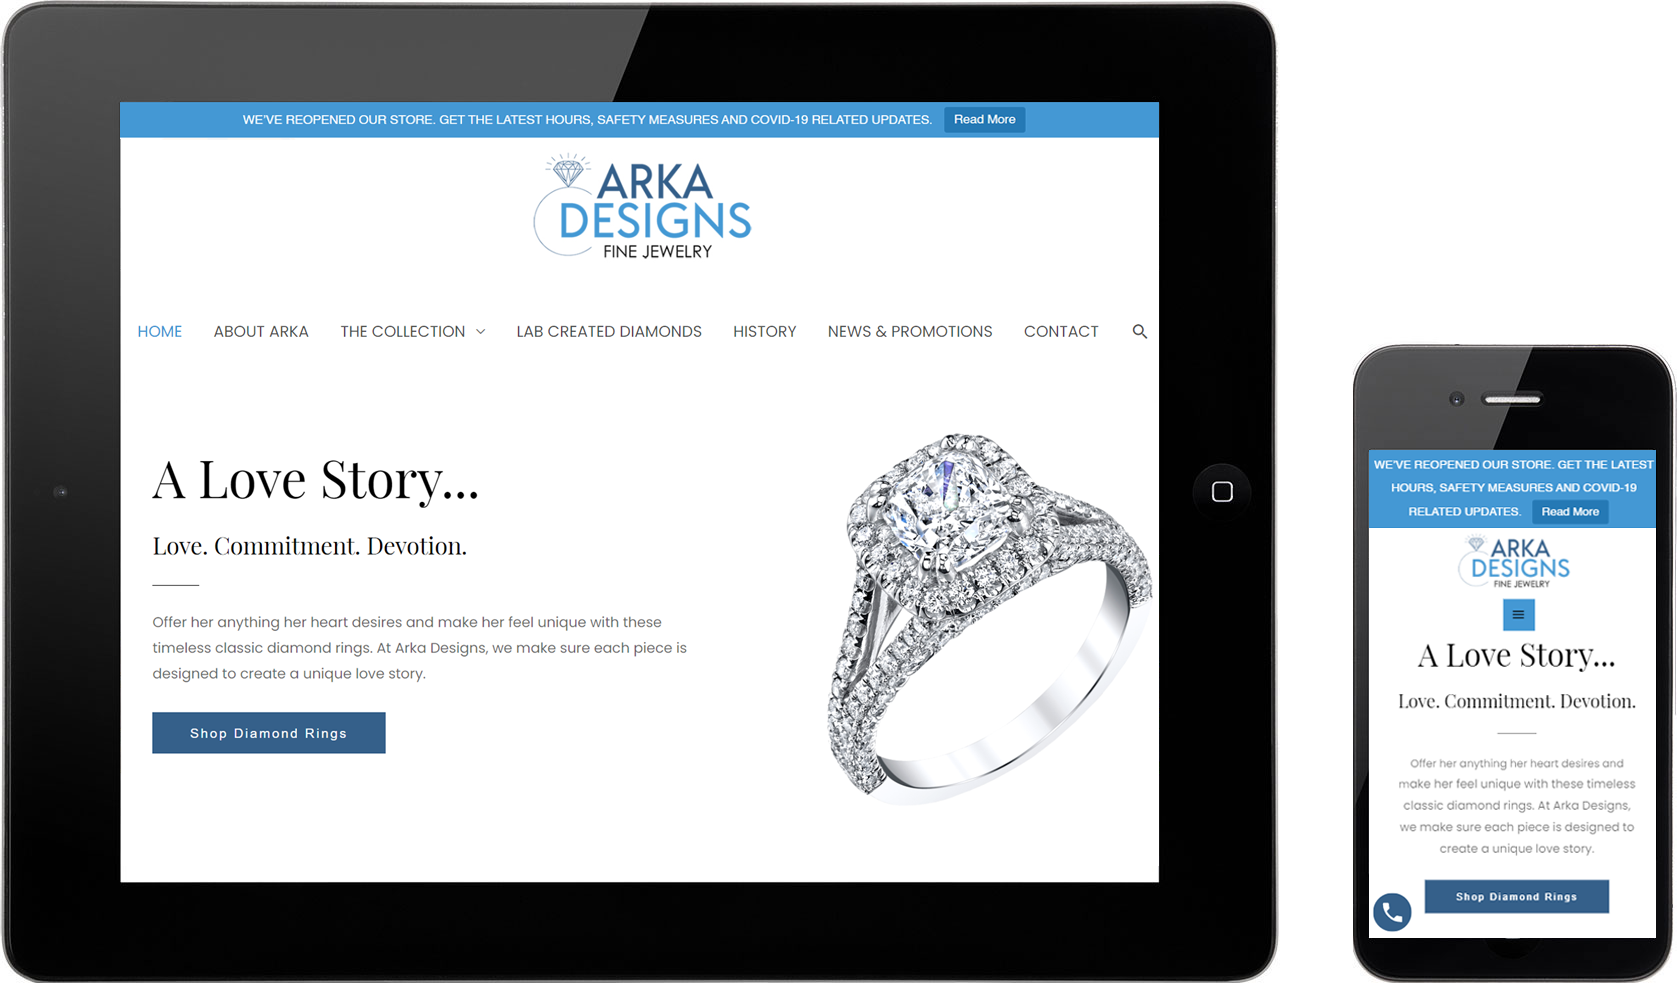 ARKA-DESIGNS-PROJECTS